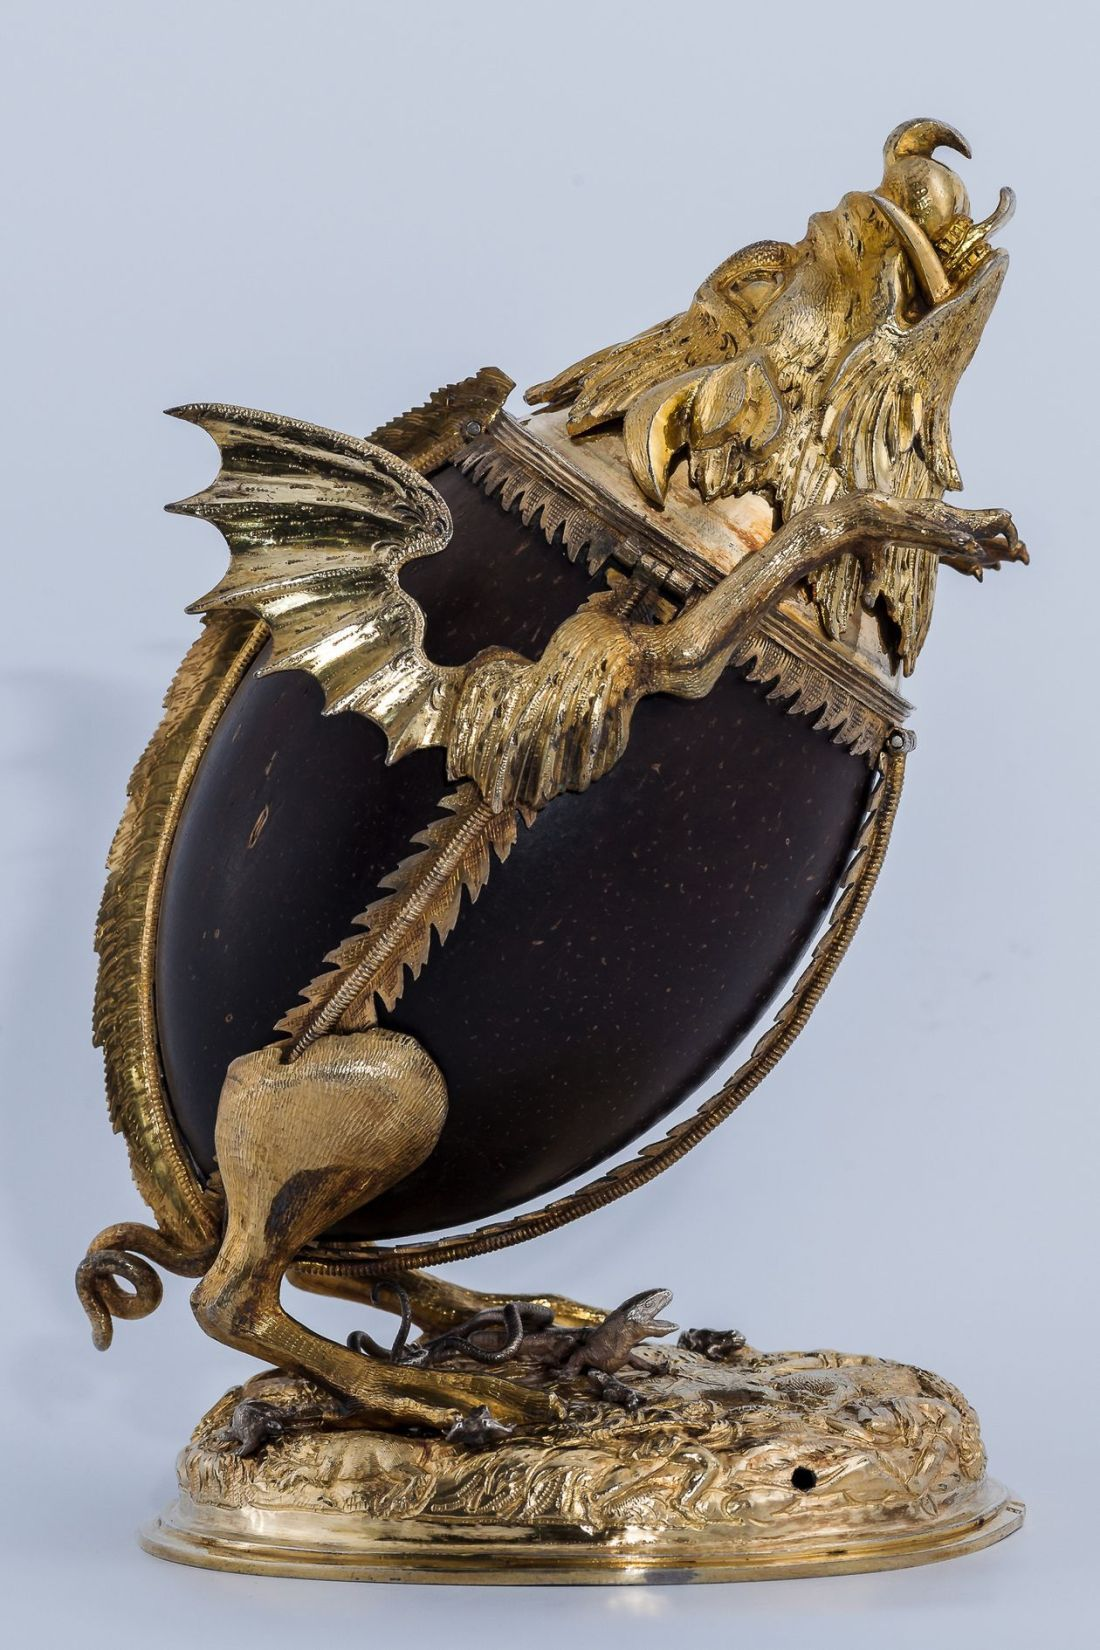 Grotesque bear and coconut cup. 1603-09.